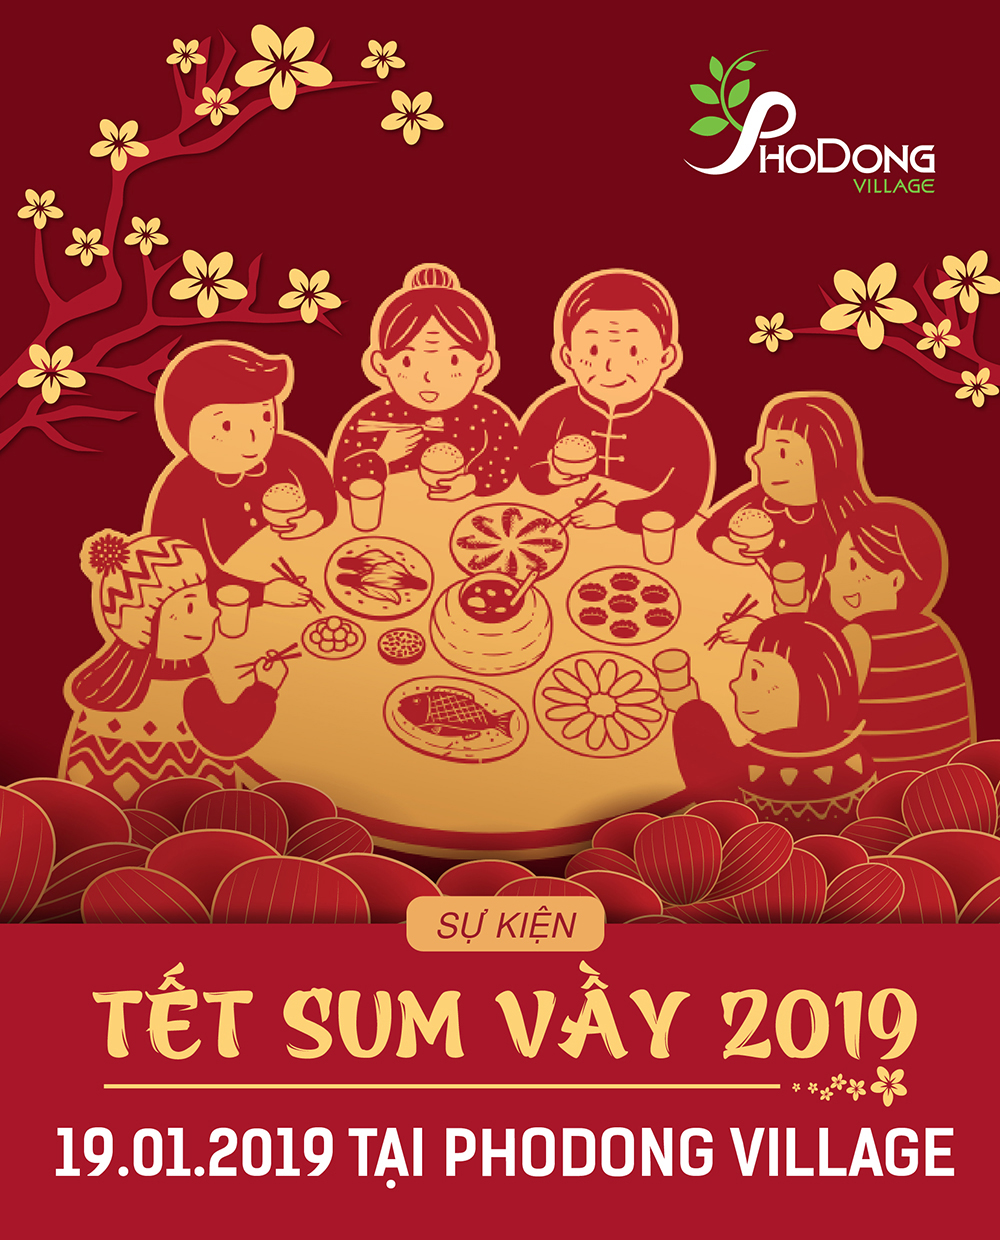 """THE INVESTOR OF PHODONG VILLAGE URBAN AREA ORGANIZSES A PROGRAMME CALLED """"TET SUM VAY 2019"""""""